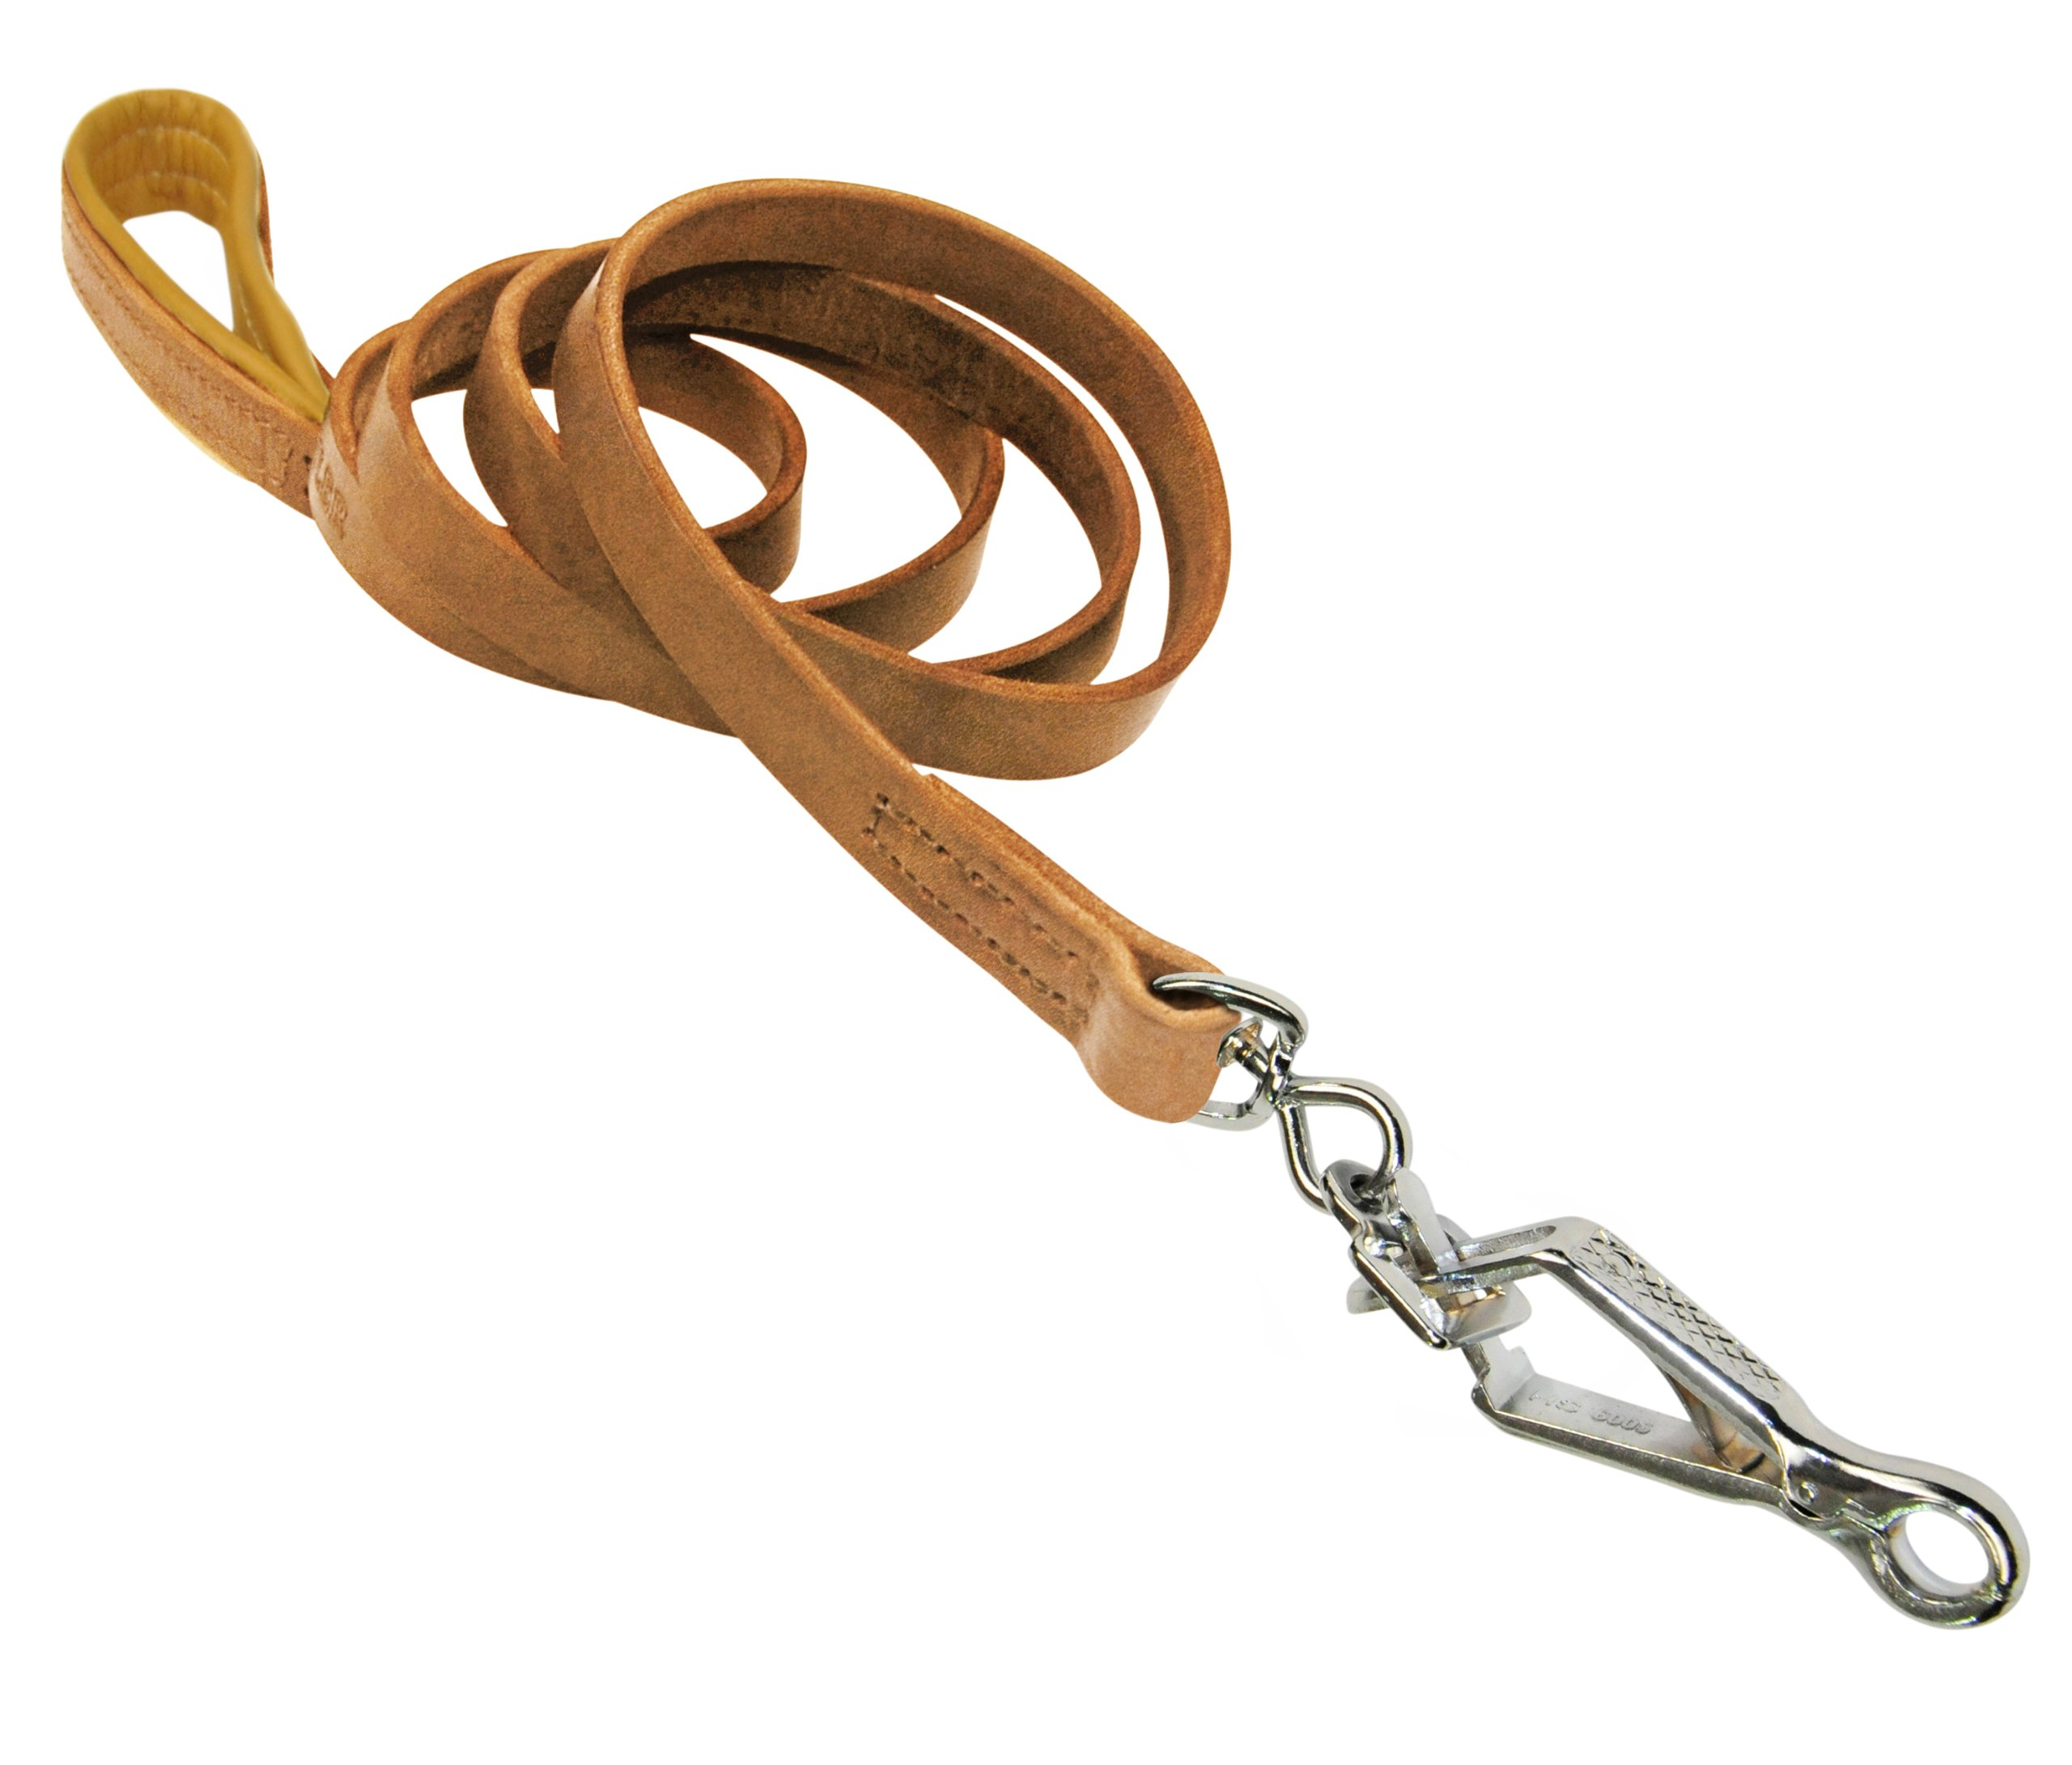 Dean & Tyler Soft Touch Dog Leash with Brown Nappa Padded Handle and Herm Sprenger Hardware, 4-Feet by 3/4-Inch, Tan